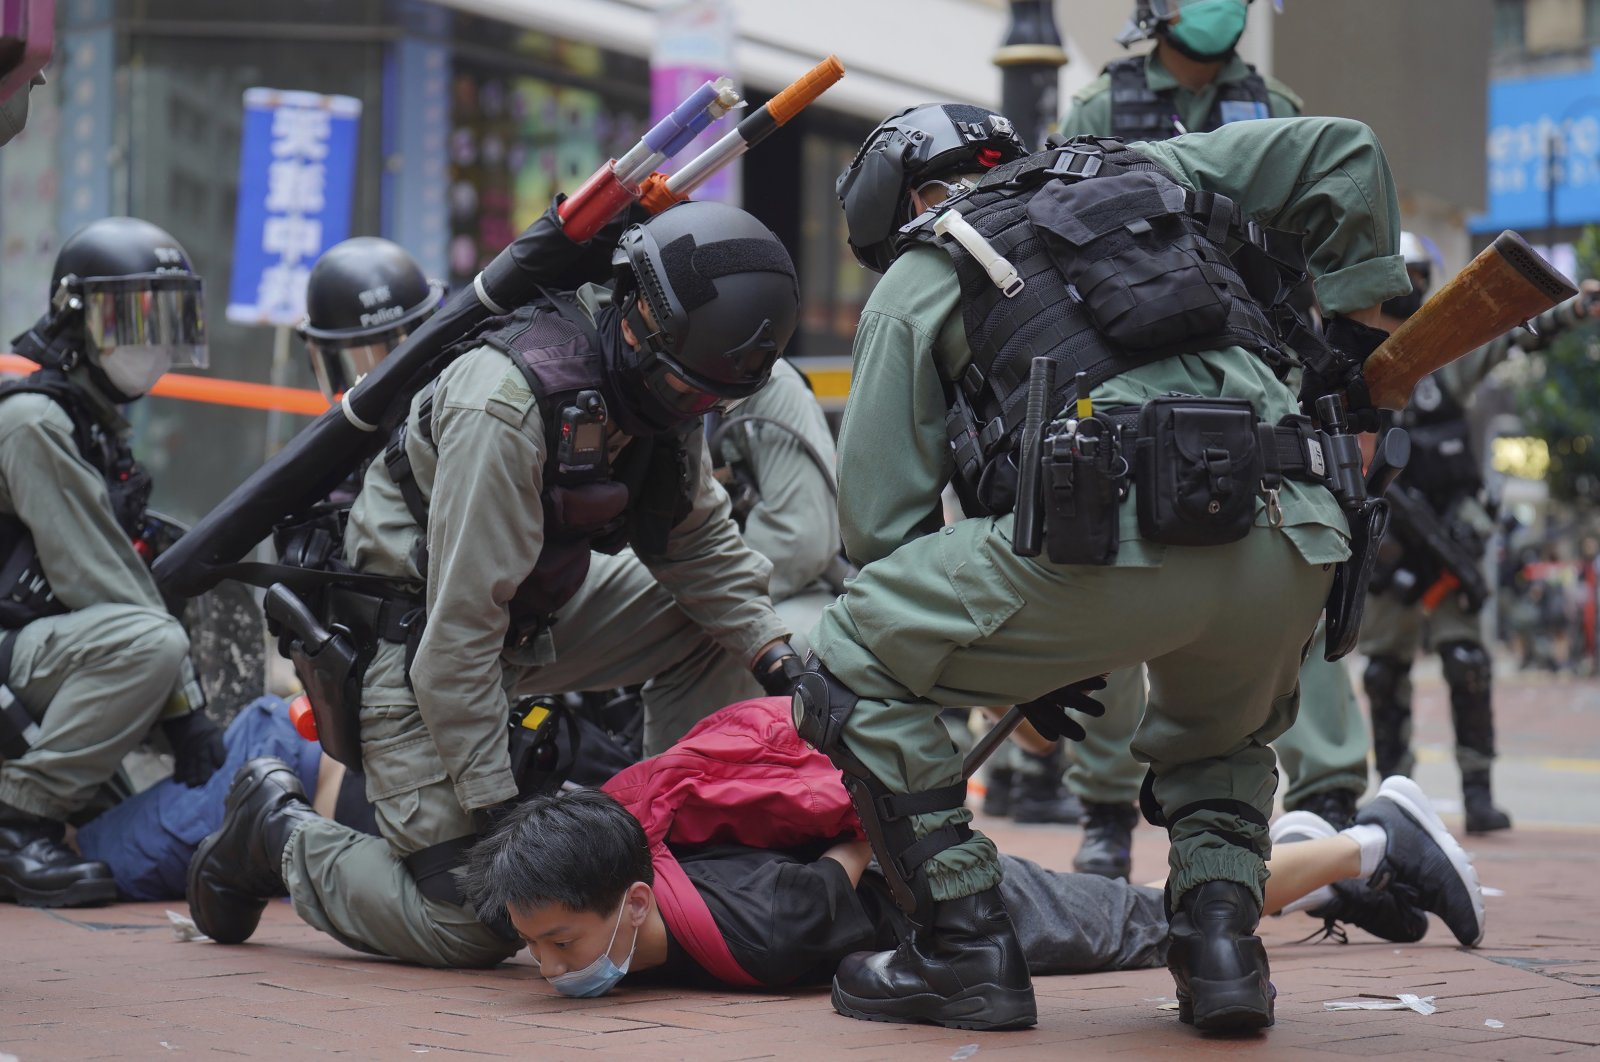 Riot police detain a protester during a demonstration against Beijing's national security legislation in Causeway Bay in Hong Kong, Sunday, May 24, 2020. (AP Photo)